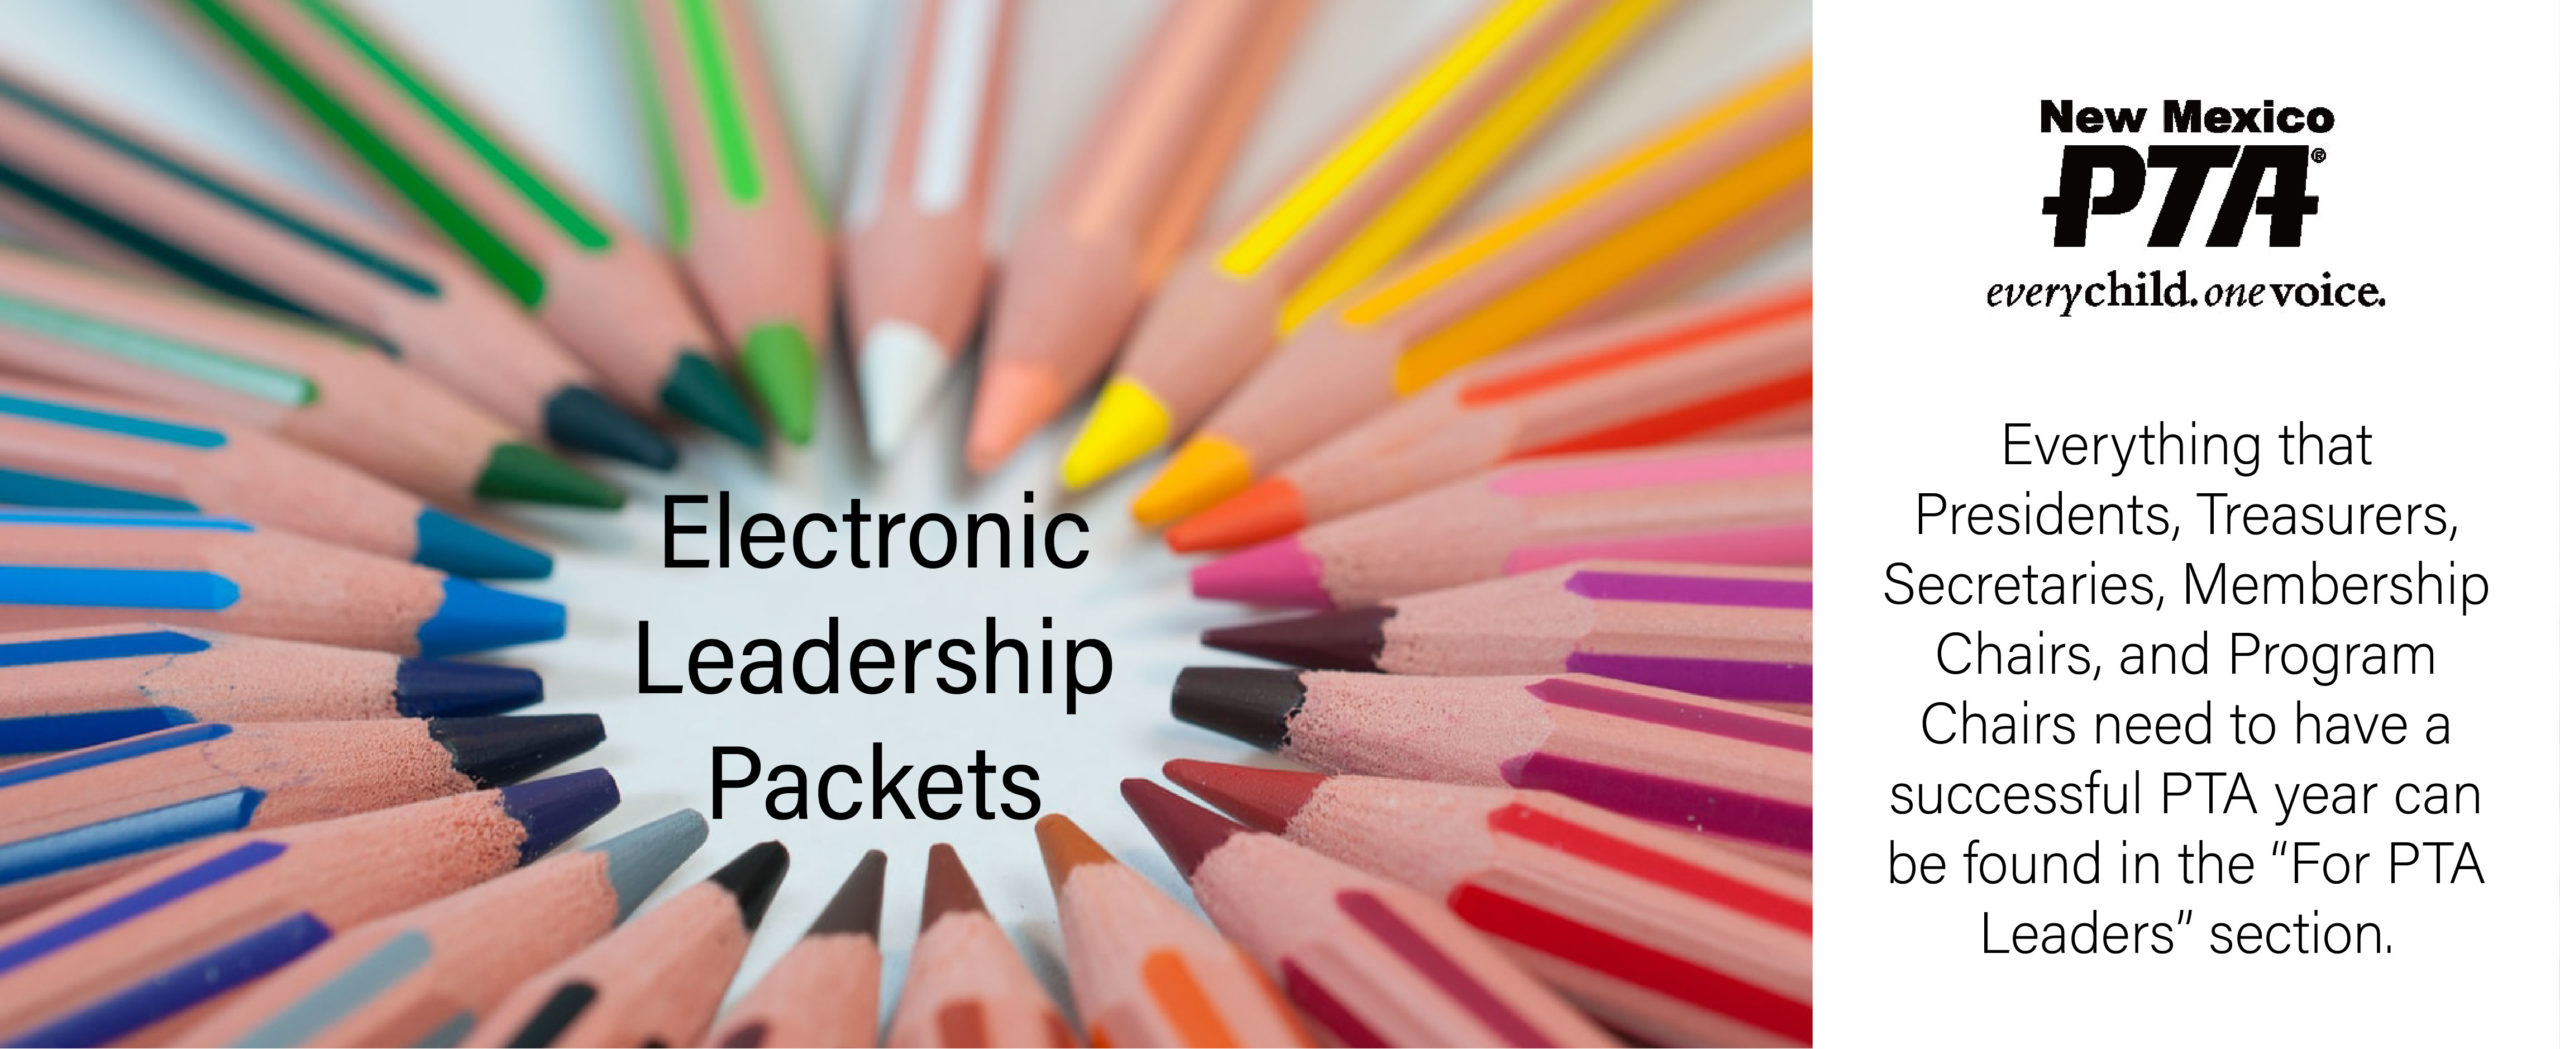 Photo of colored pencils with description of leadership packets for PTA officers.